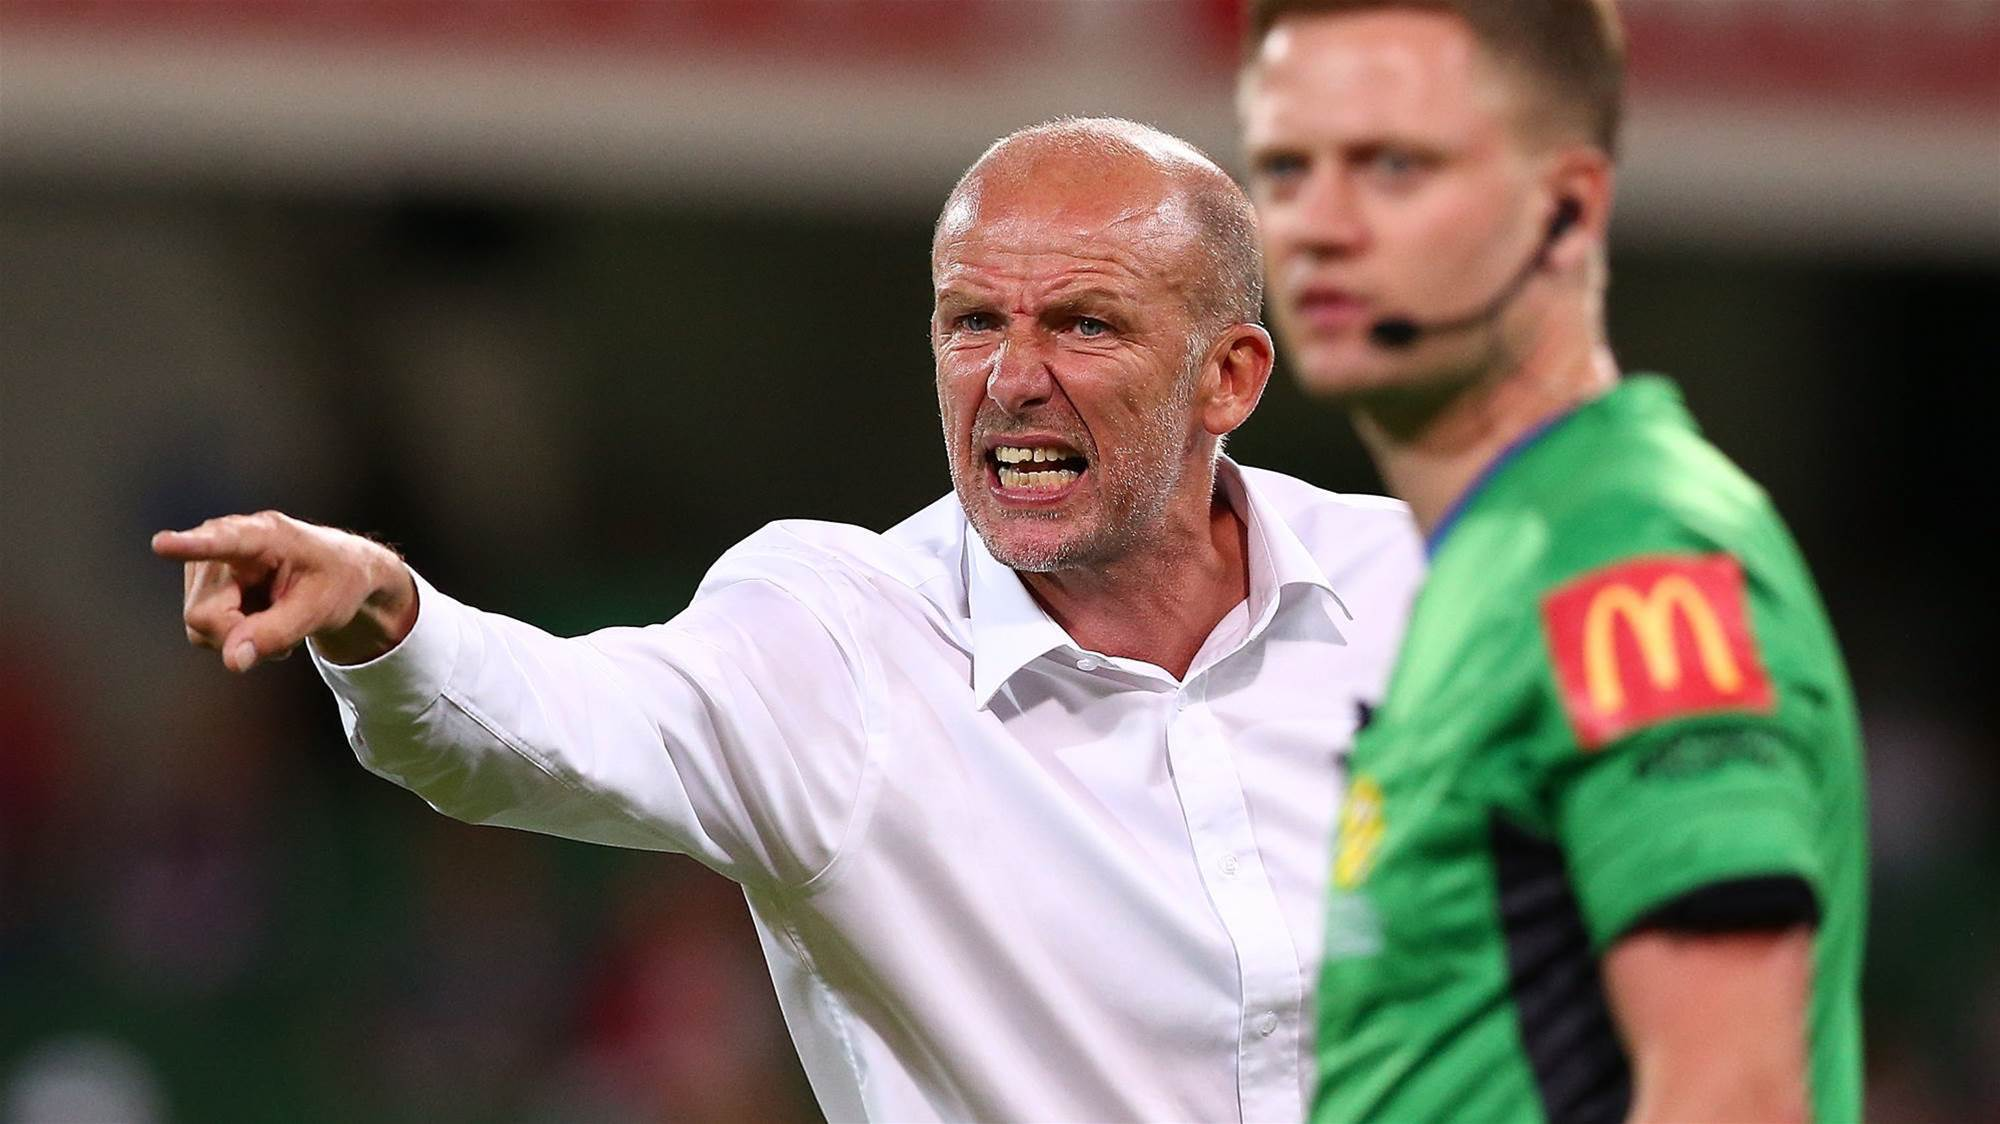 Kenny Lowe launches expletive-filled rant at training